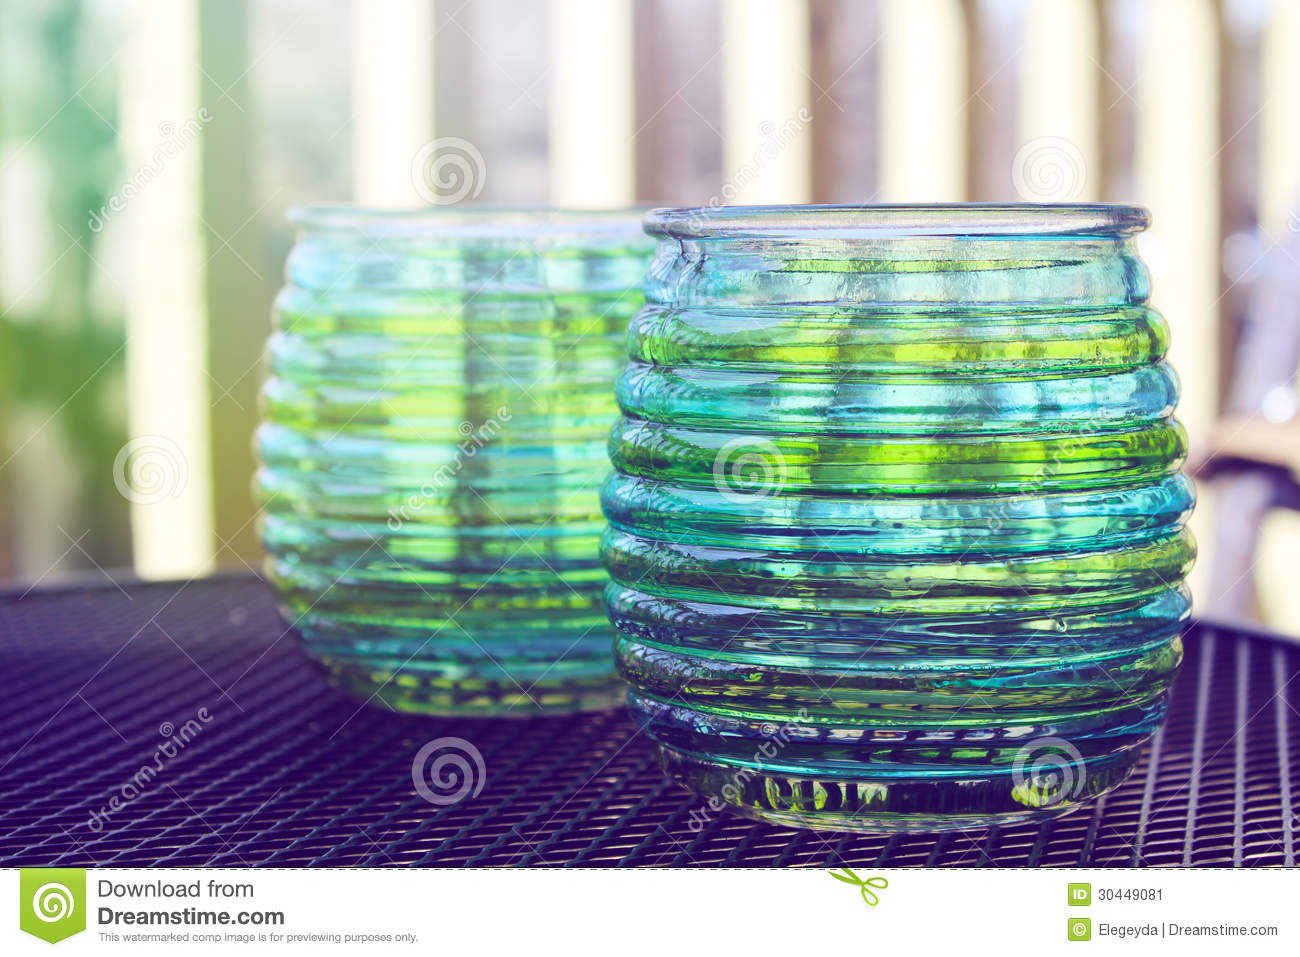 Beautiful Design With Glass Cups Stock Image   Image  30449081